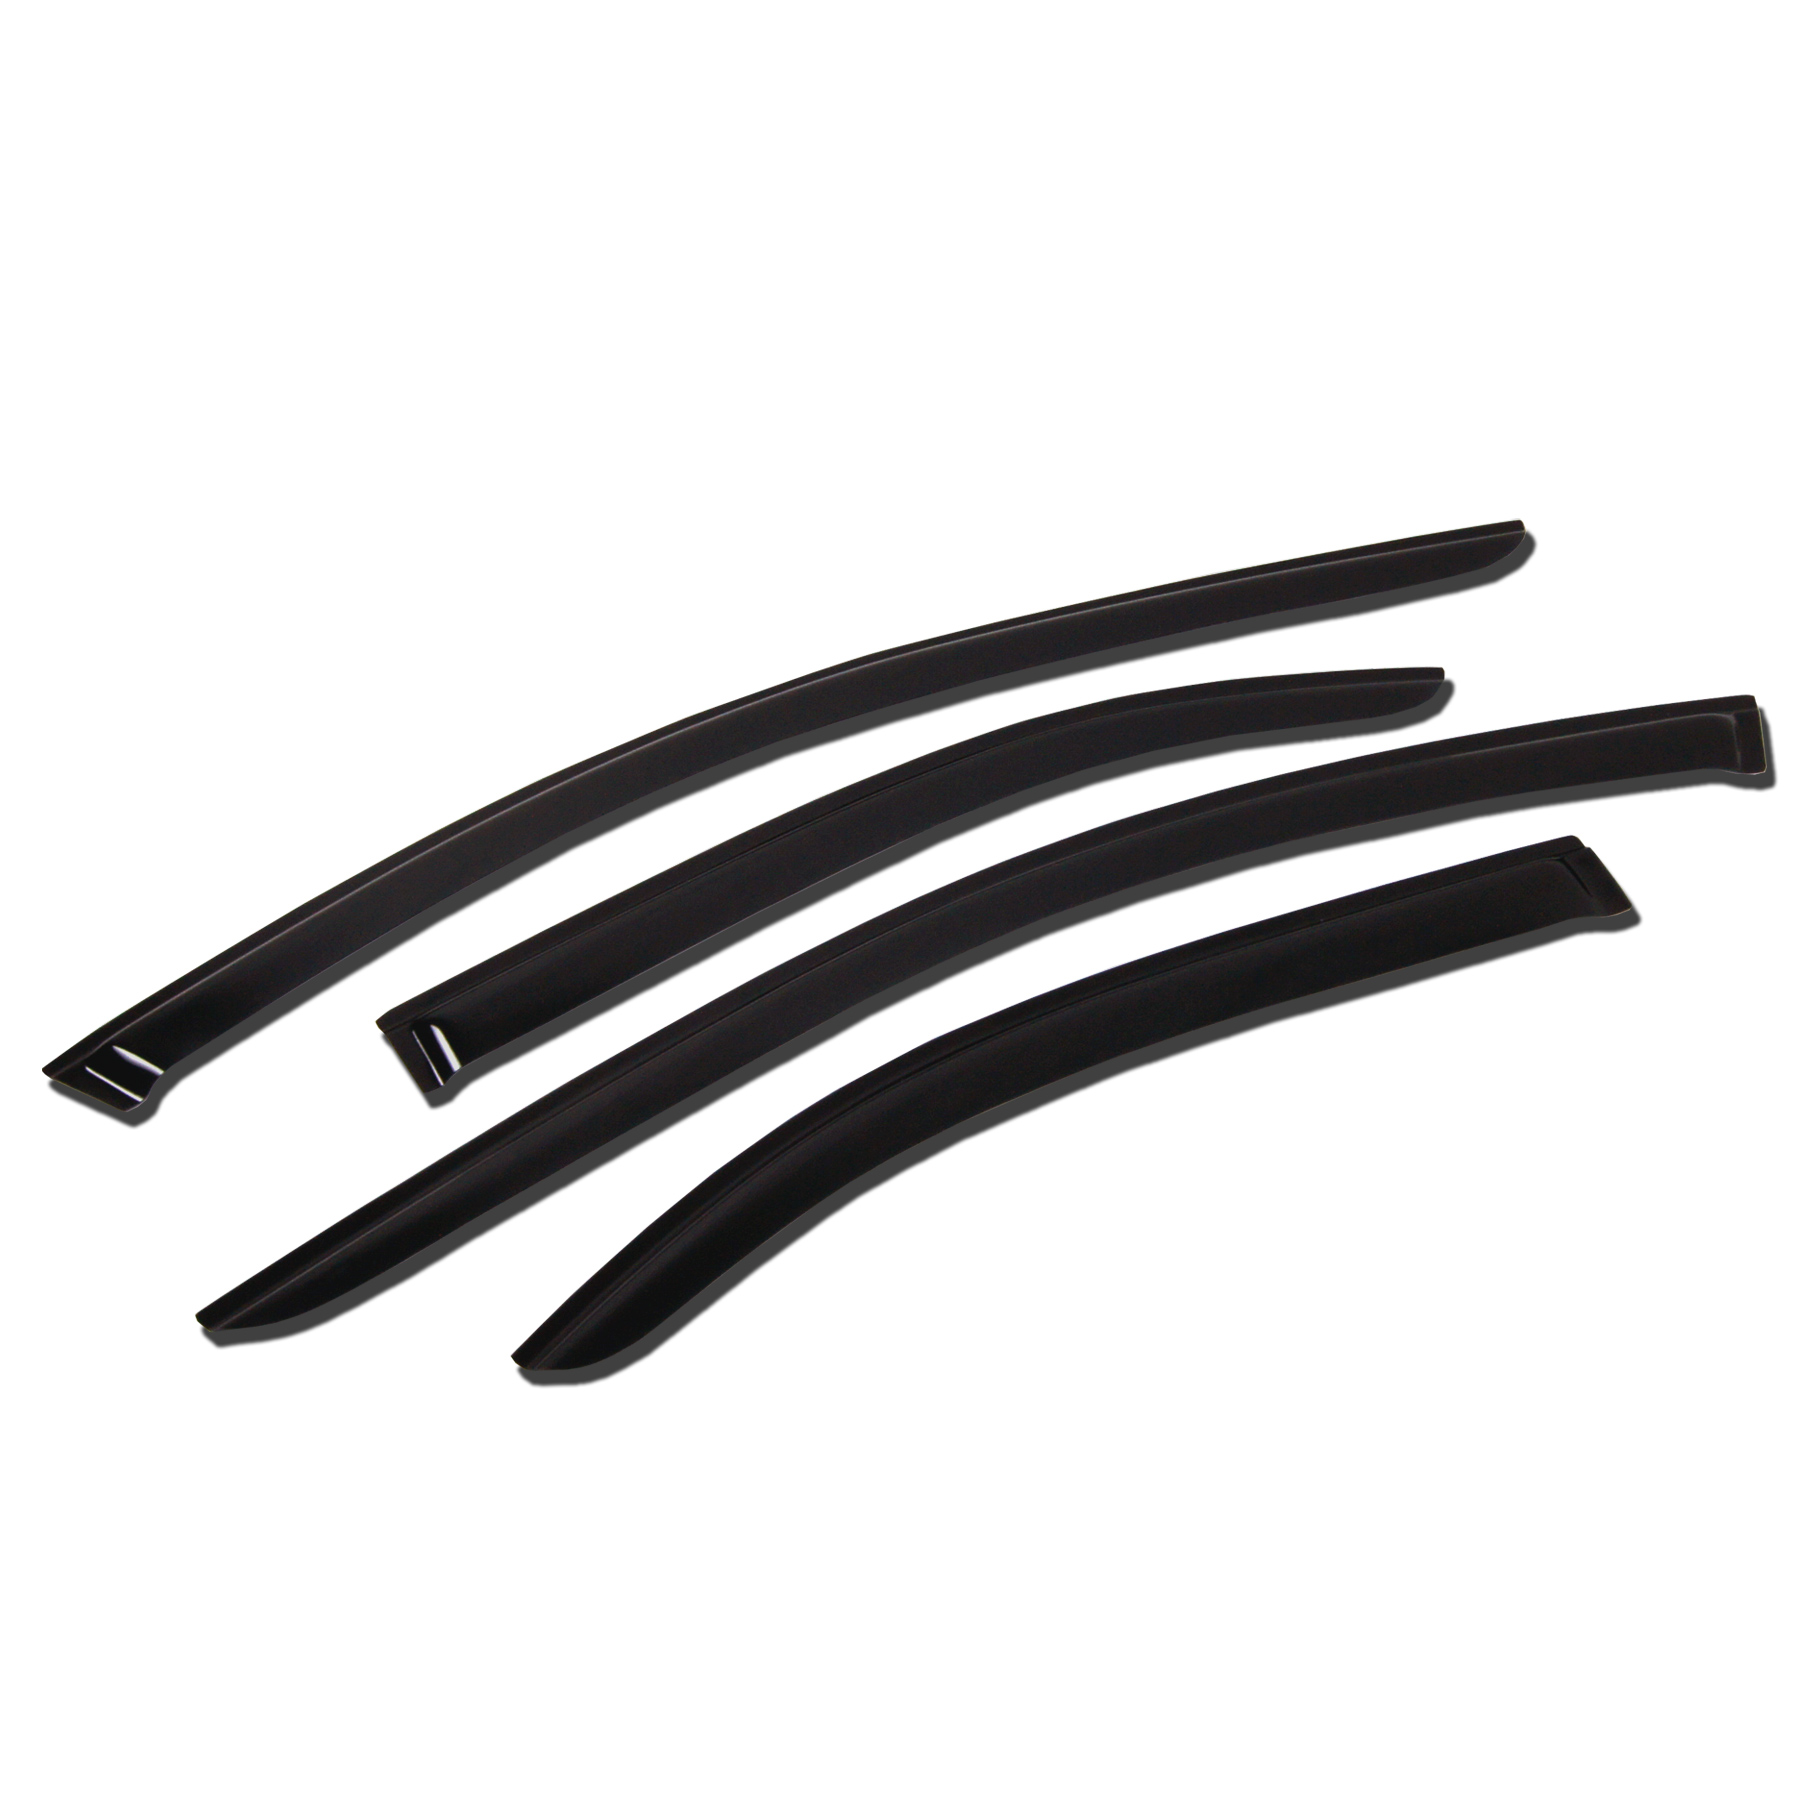 TuningPros WV-154 Window Visor For 1997-2017 Ford Expedition - Outside Mount Deflector Rain Guard Dark Smoke 4 Pcs Set Ford Expedition 97 98 99 00 01 02 03 04 05 06 07 08 09 10 11 12 13 14 15 16 17